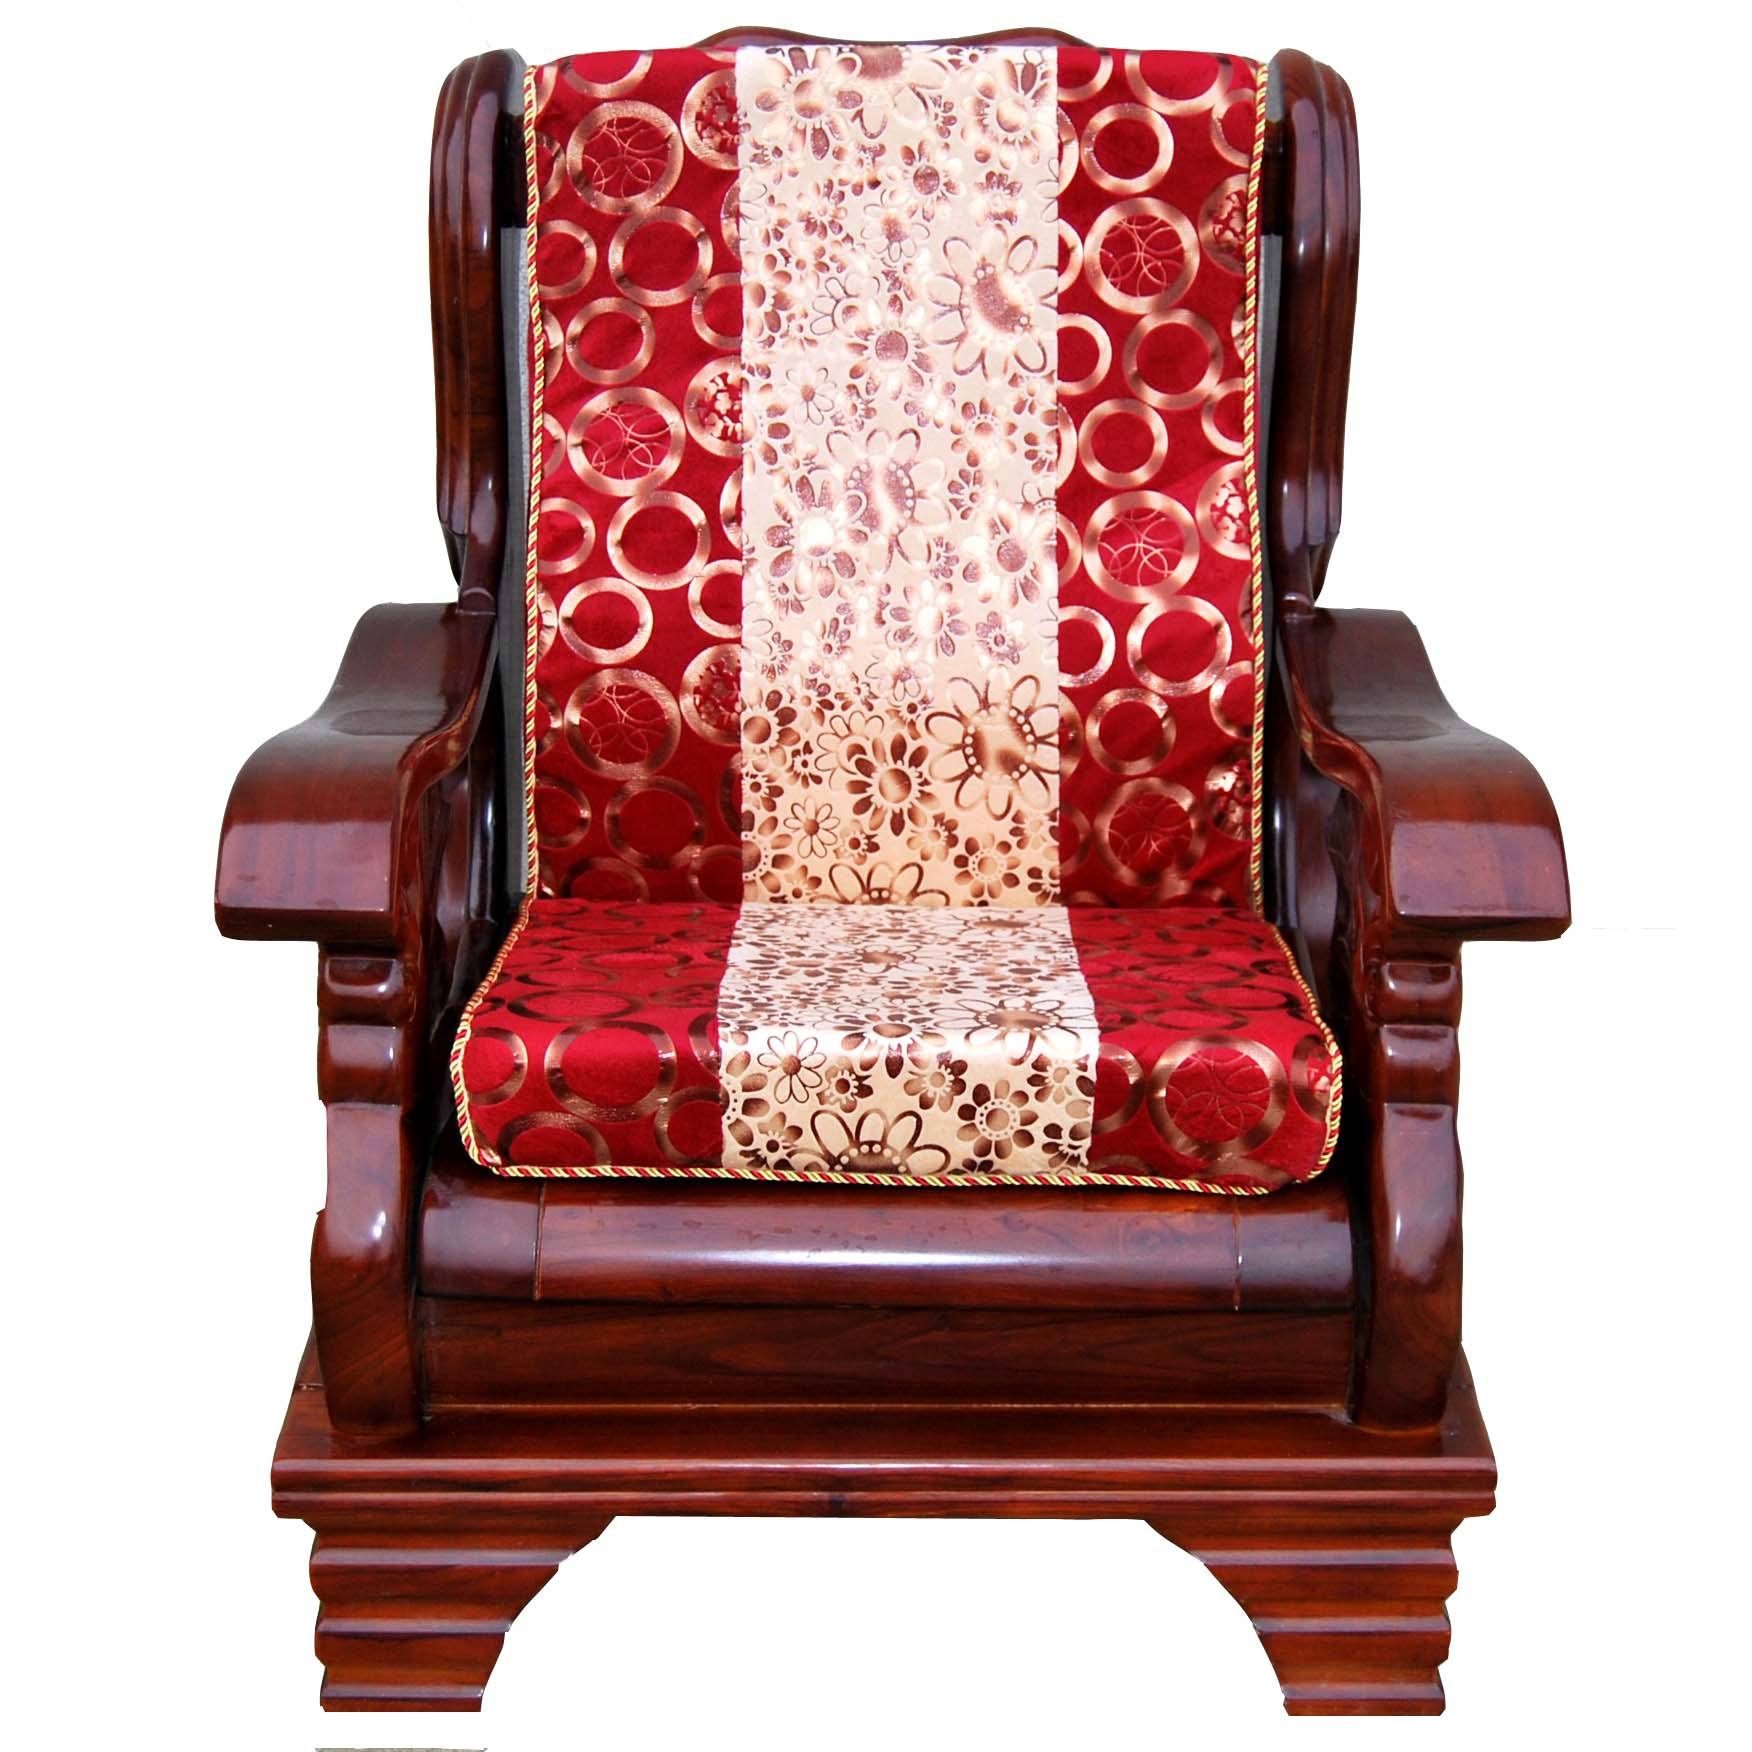 2013 sofa mahogany mat thick sponge wool chair wood sofa cushion belt one piece customize(China (Mainland))